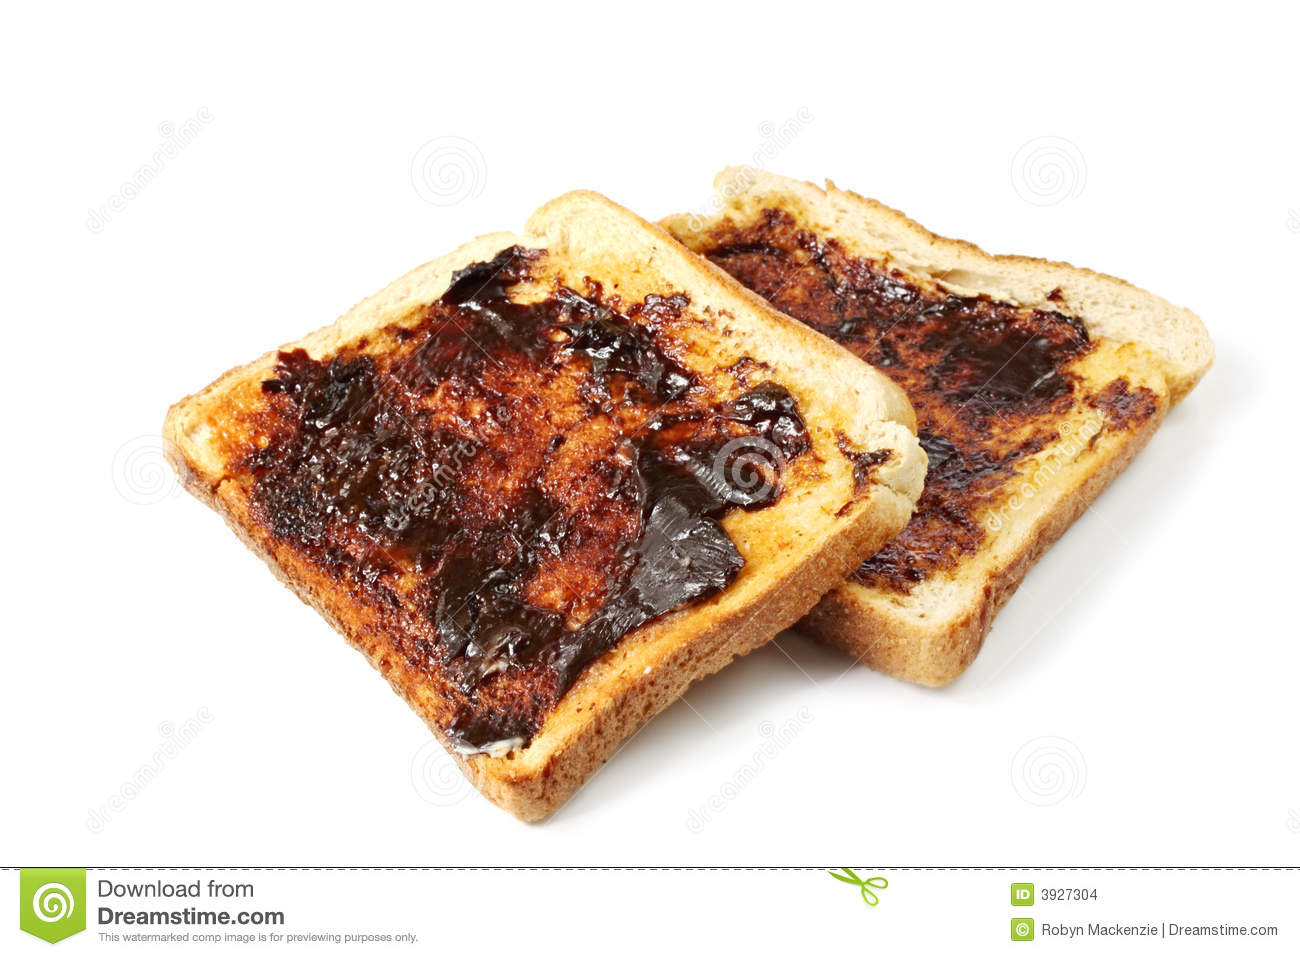 Vegemite on toast, an Australian icon. Isolated on white.